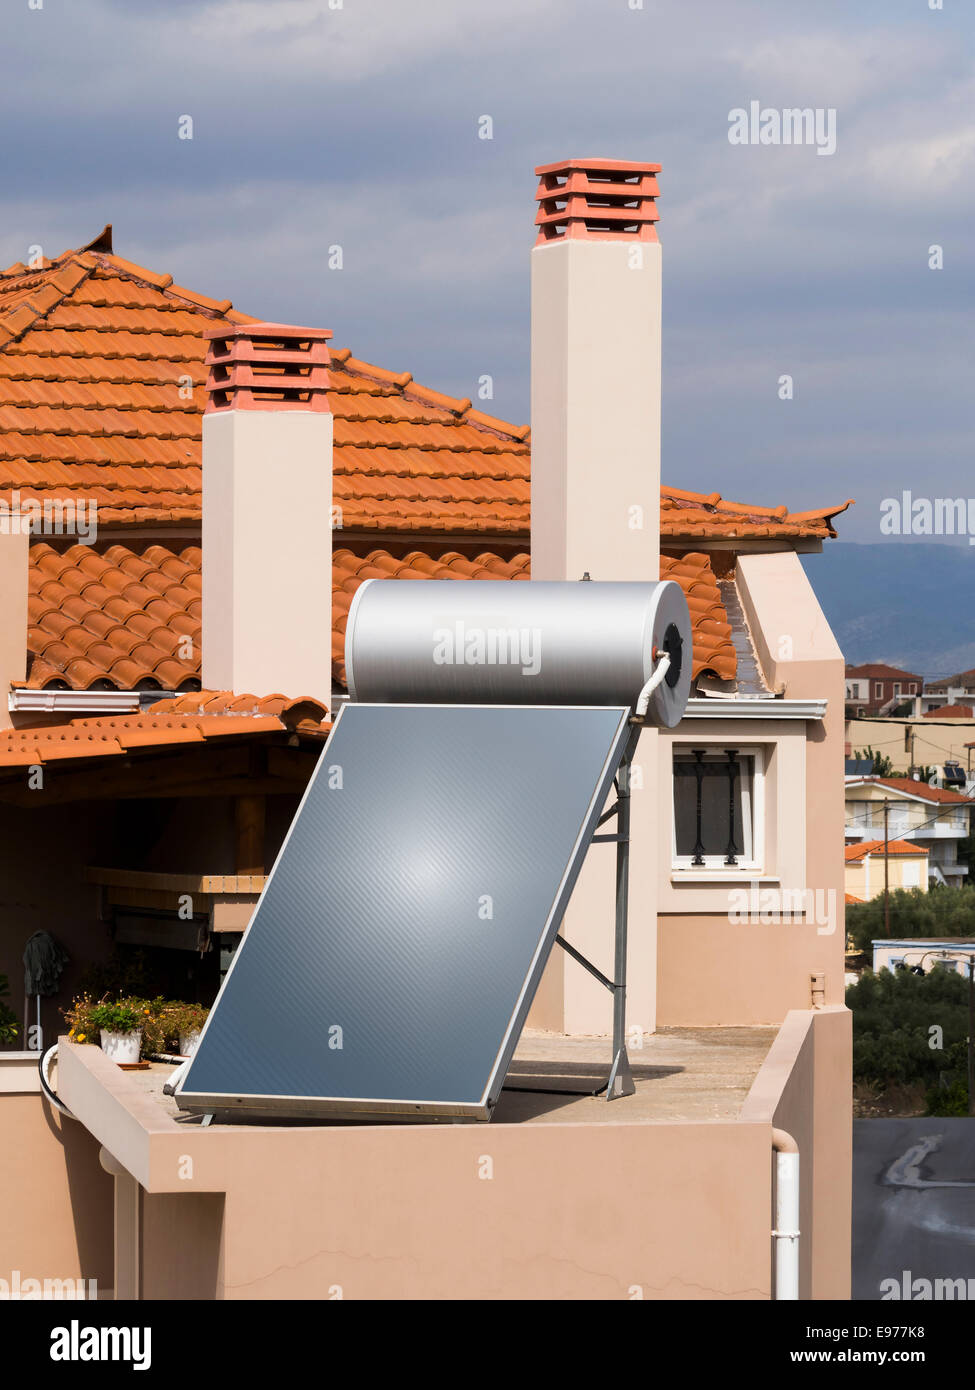 Solar water heater on roof of tile roofed house - Stock Image